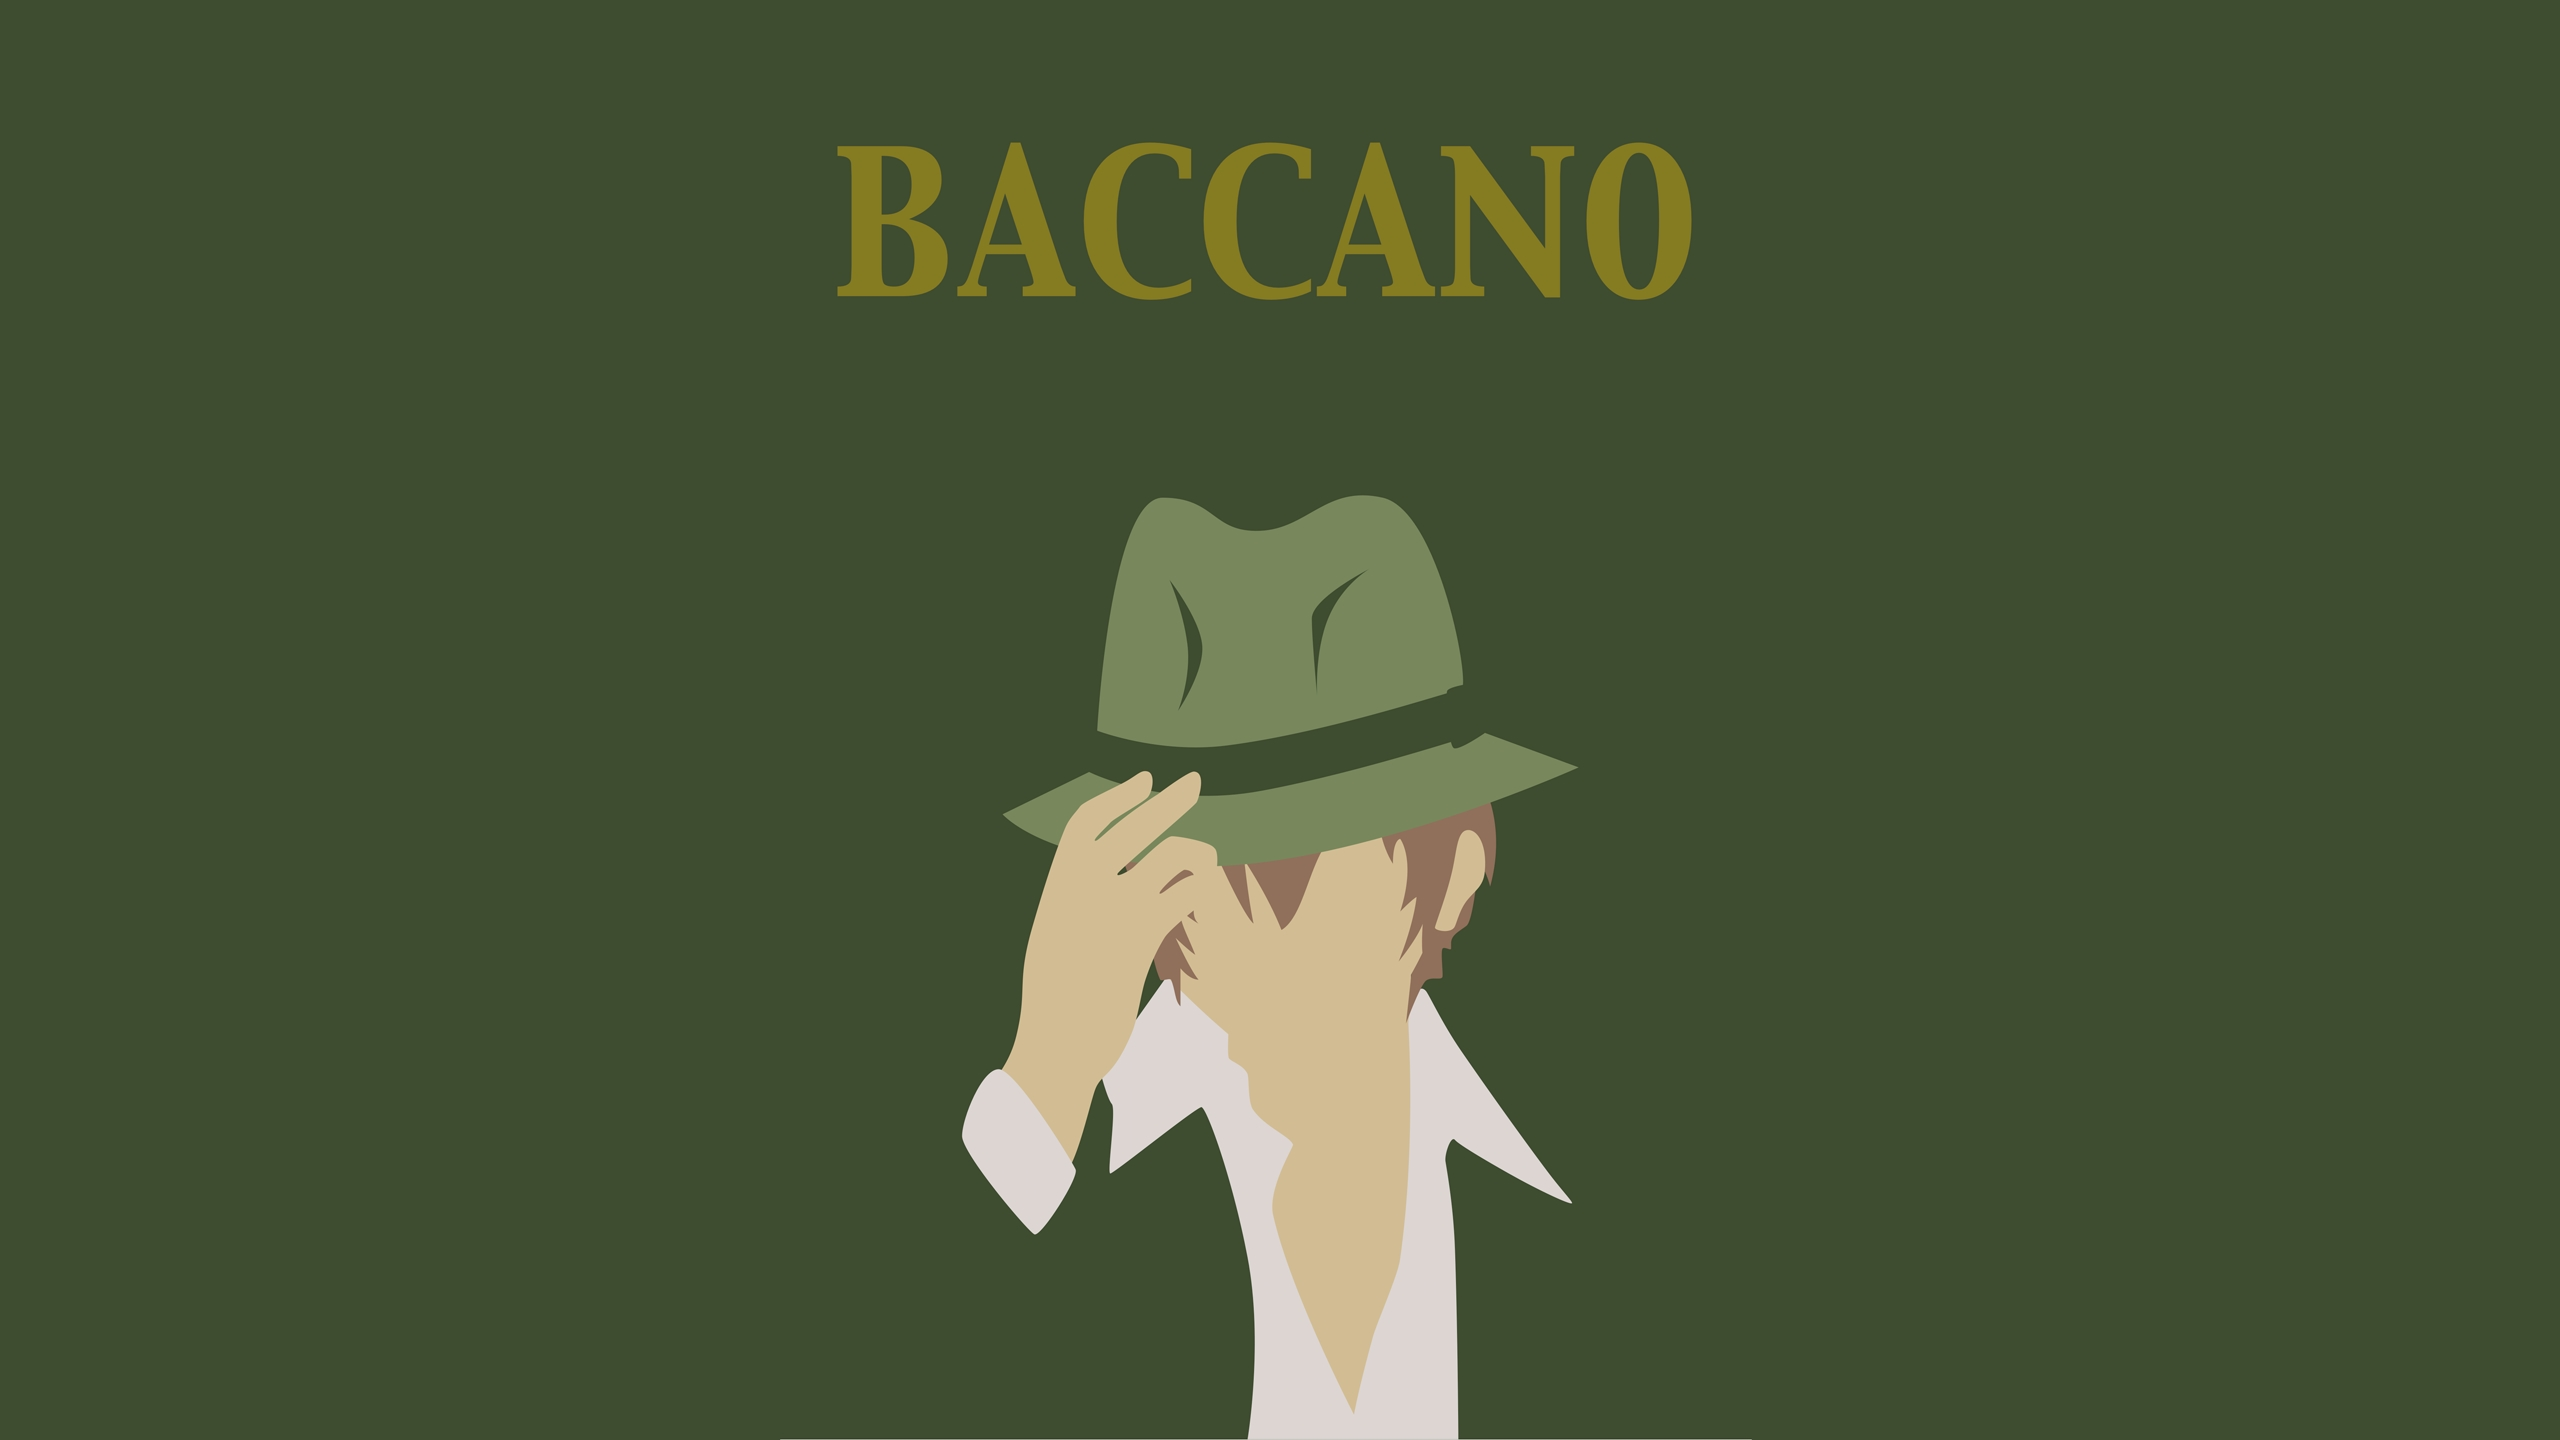 baccano download wallpaper